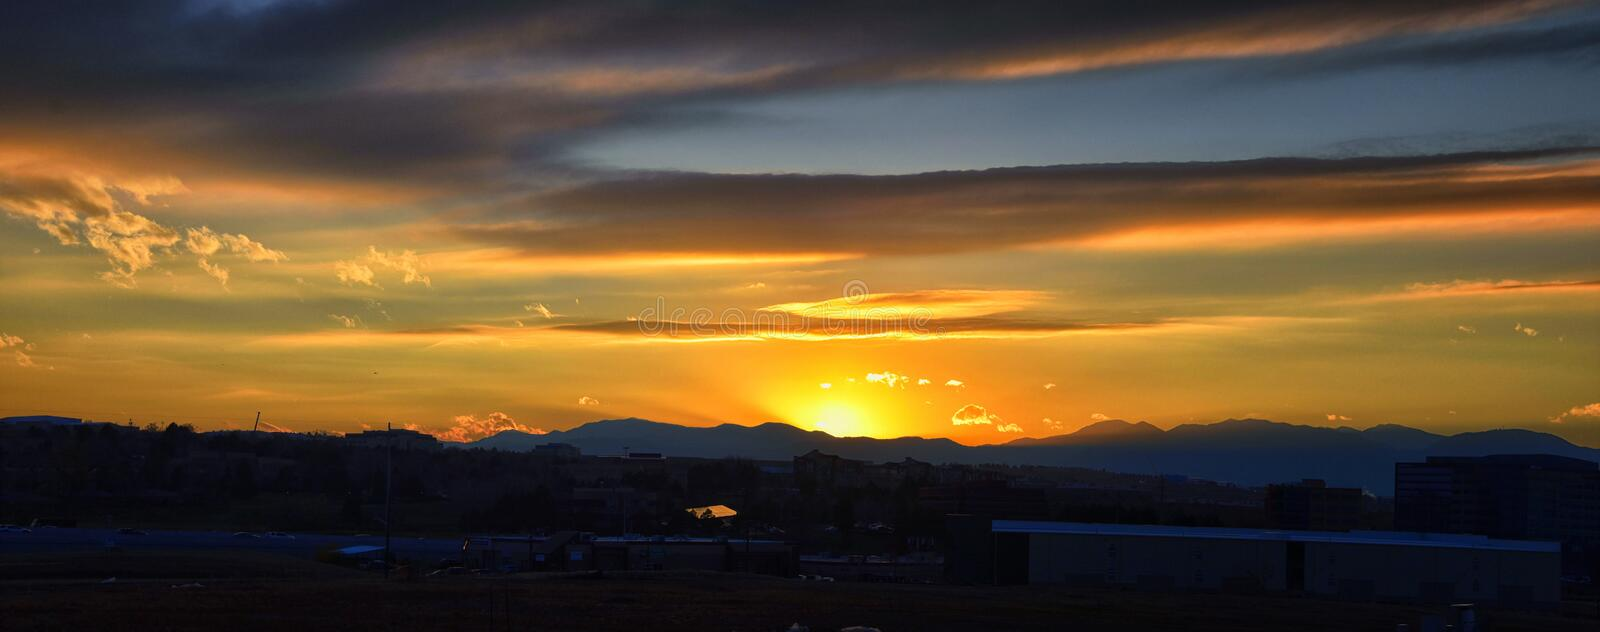 Tranquil panoramia scene of red sun and orange sky sunset over the Rocky Mountains in Colorado by Denver. United States stock photo